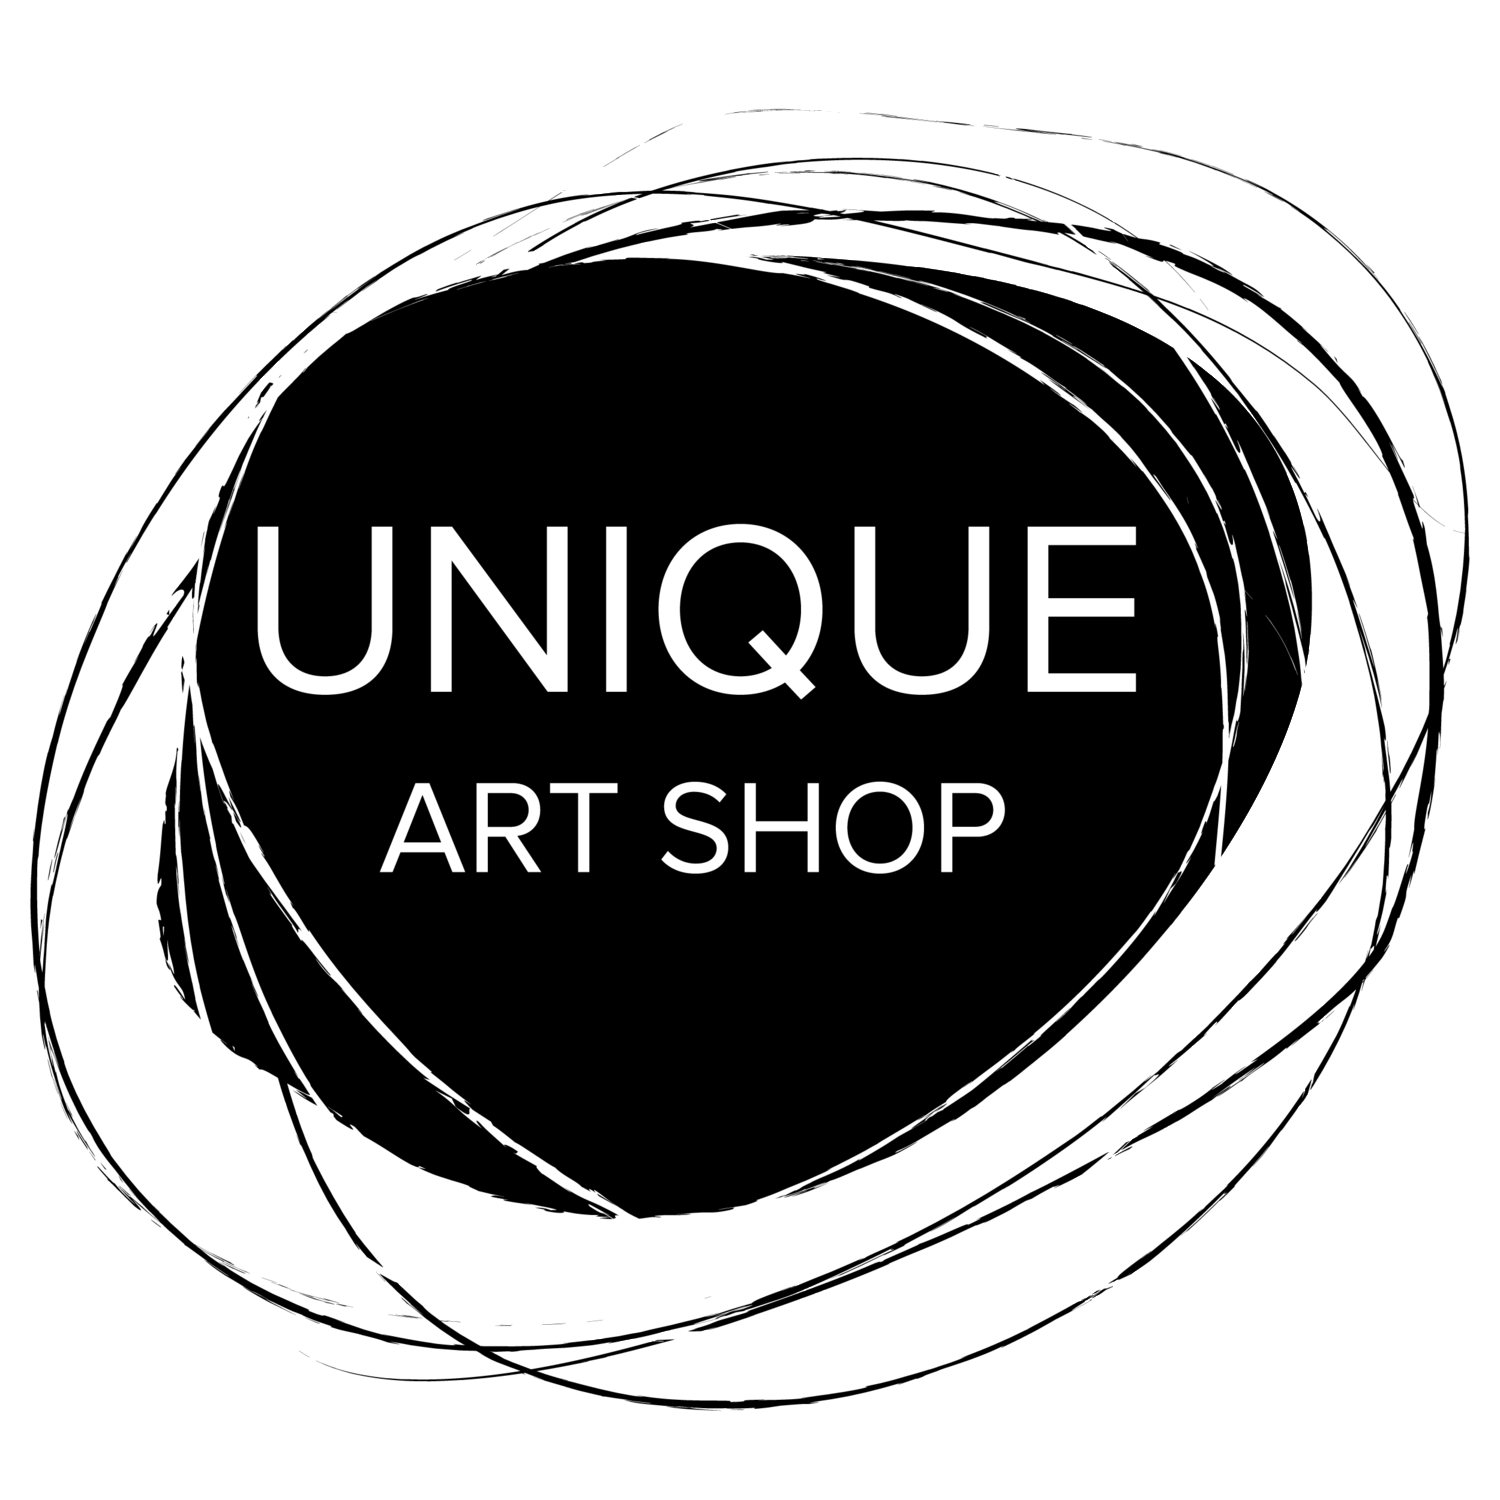 unique art shop & gallery